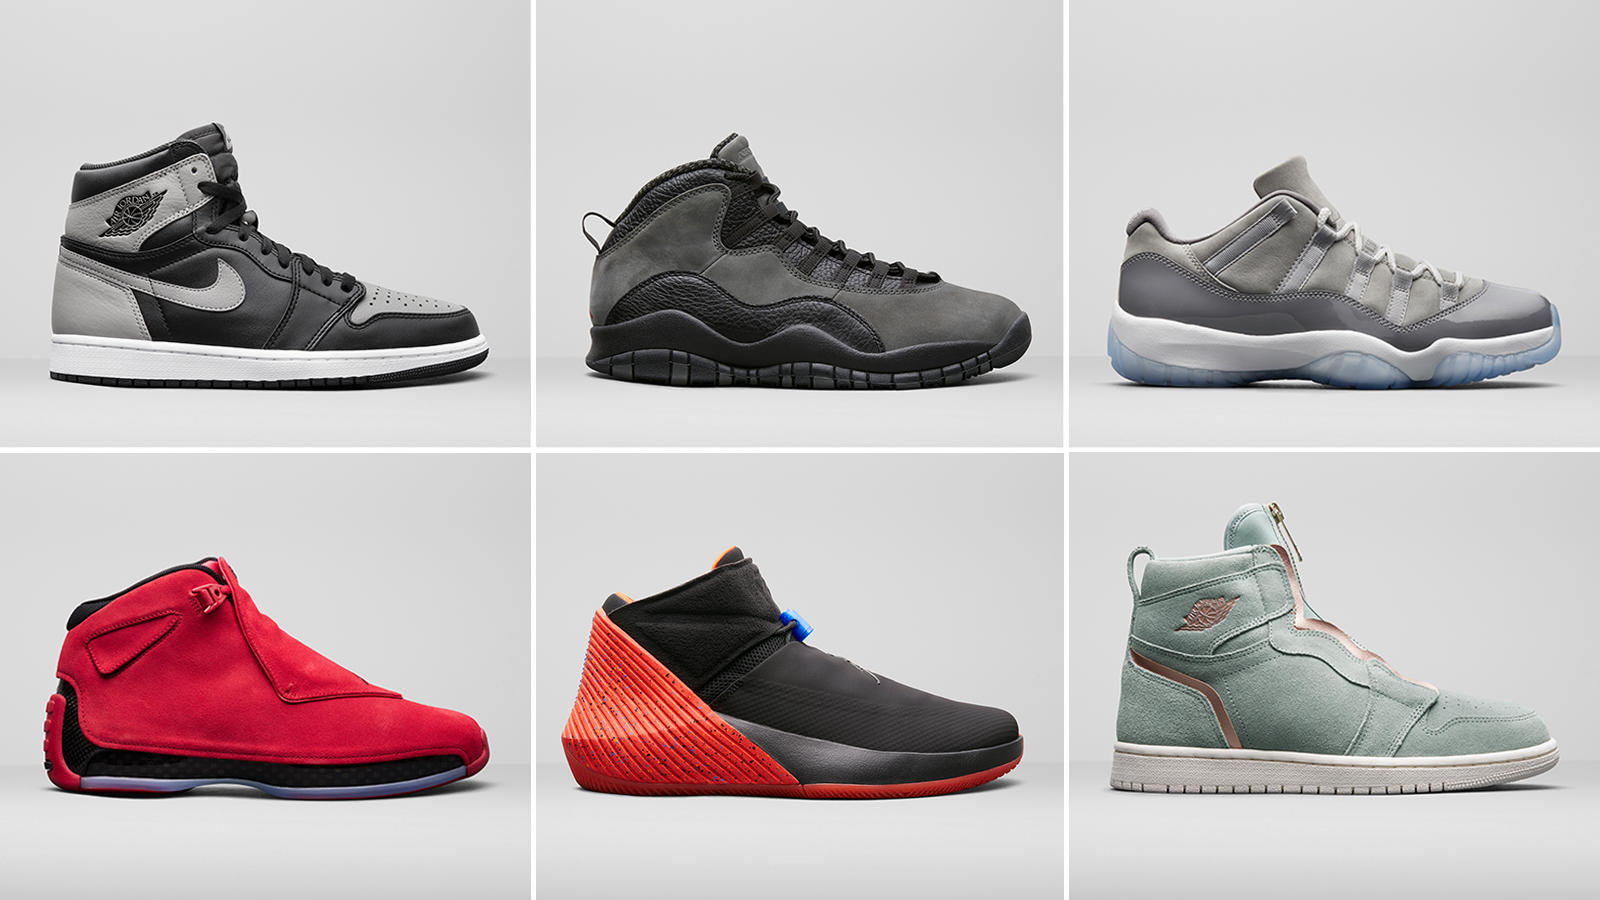 3ec7130e3de8 Jordan Brand Unveils Select Styles For Summer 2018 - Nike News